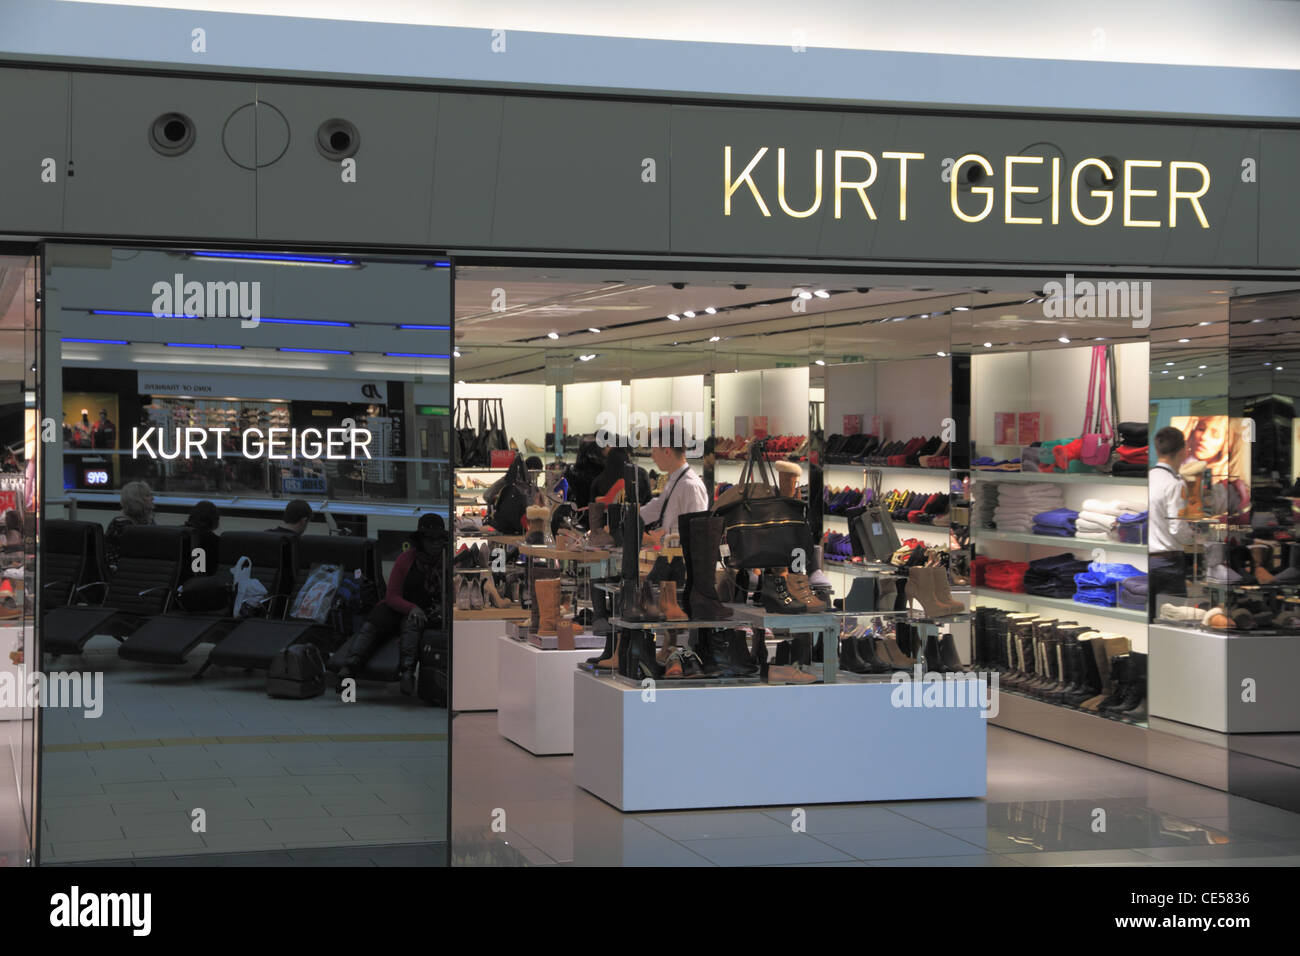 628bd6eae Shoppers and travelers at the Kurt Geiger Fashion Footwear Shoes Boutique  shop store in Gatwick Airport, Sussex, England.